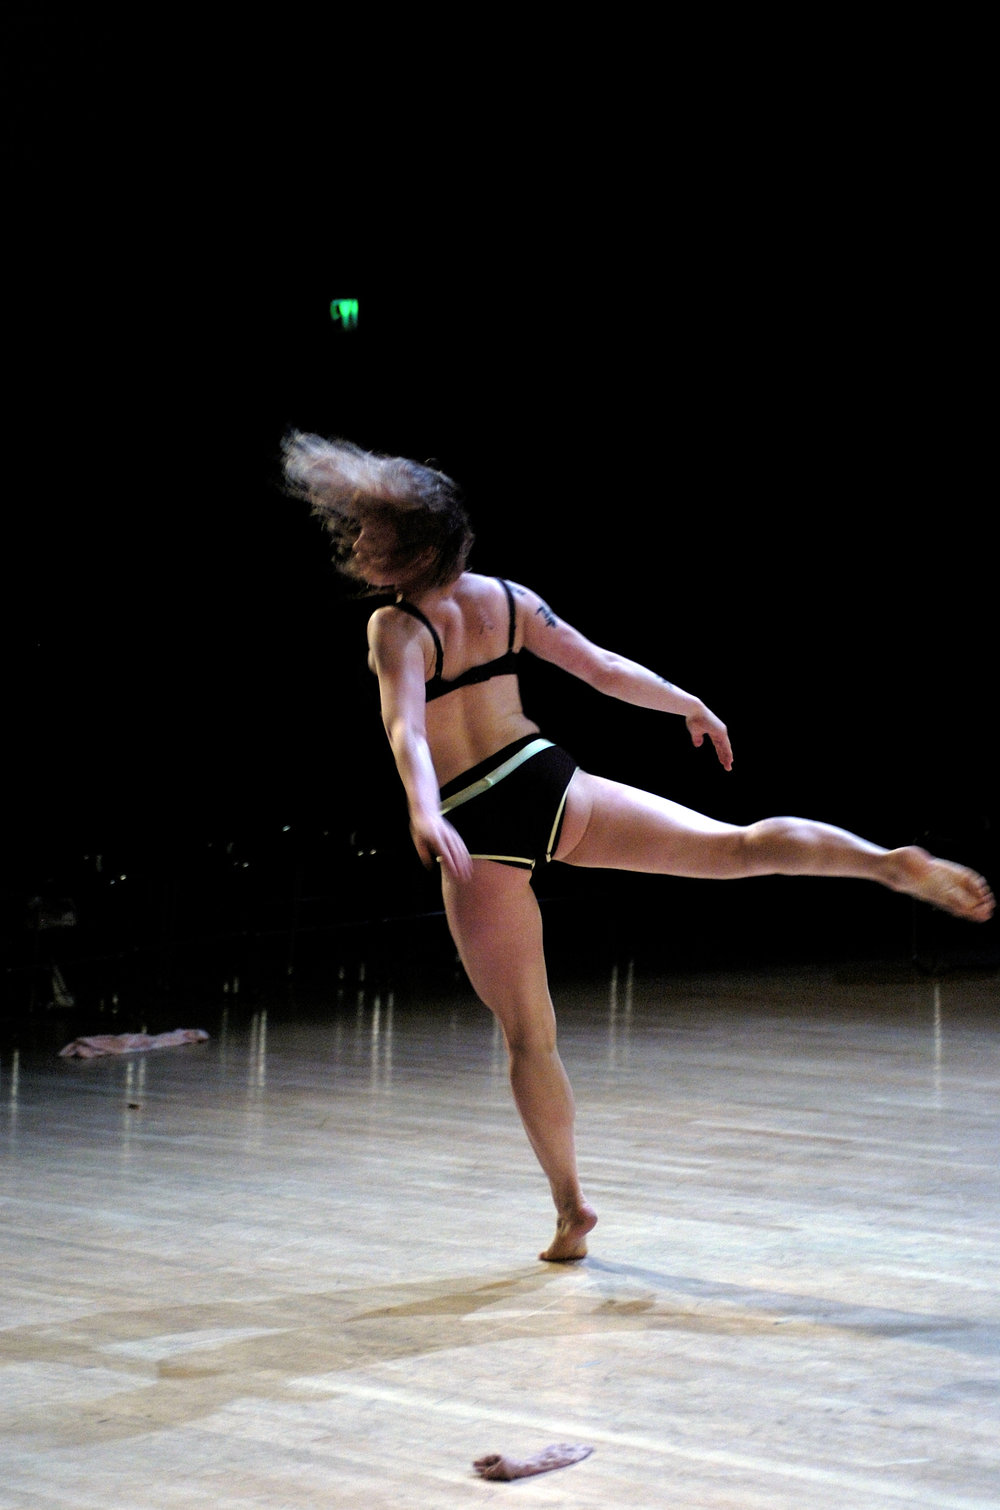 Leah Martini dances on wooden floor in bikini: back leg outstretched, hair flying, arms stretched behind her. (photo: Andy Mogg)